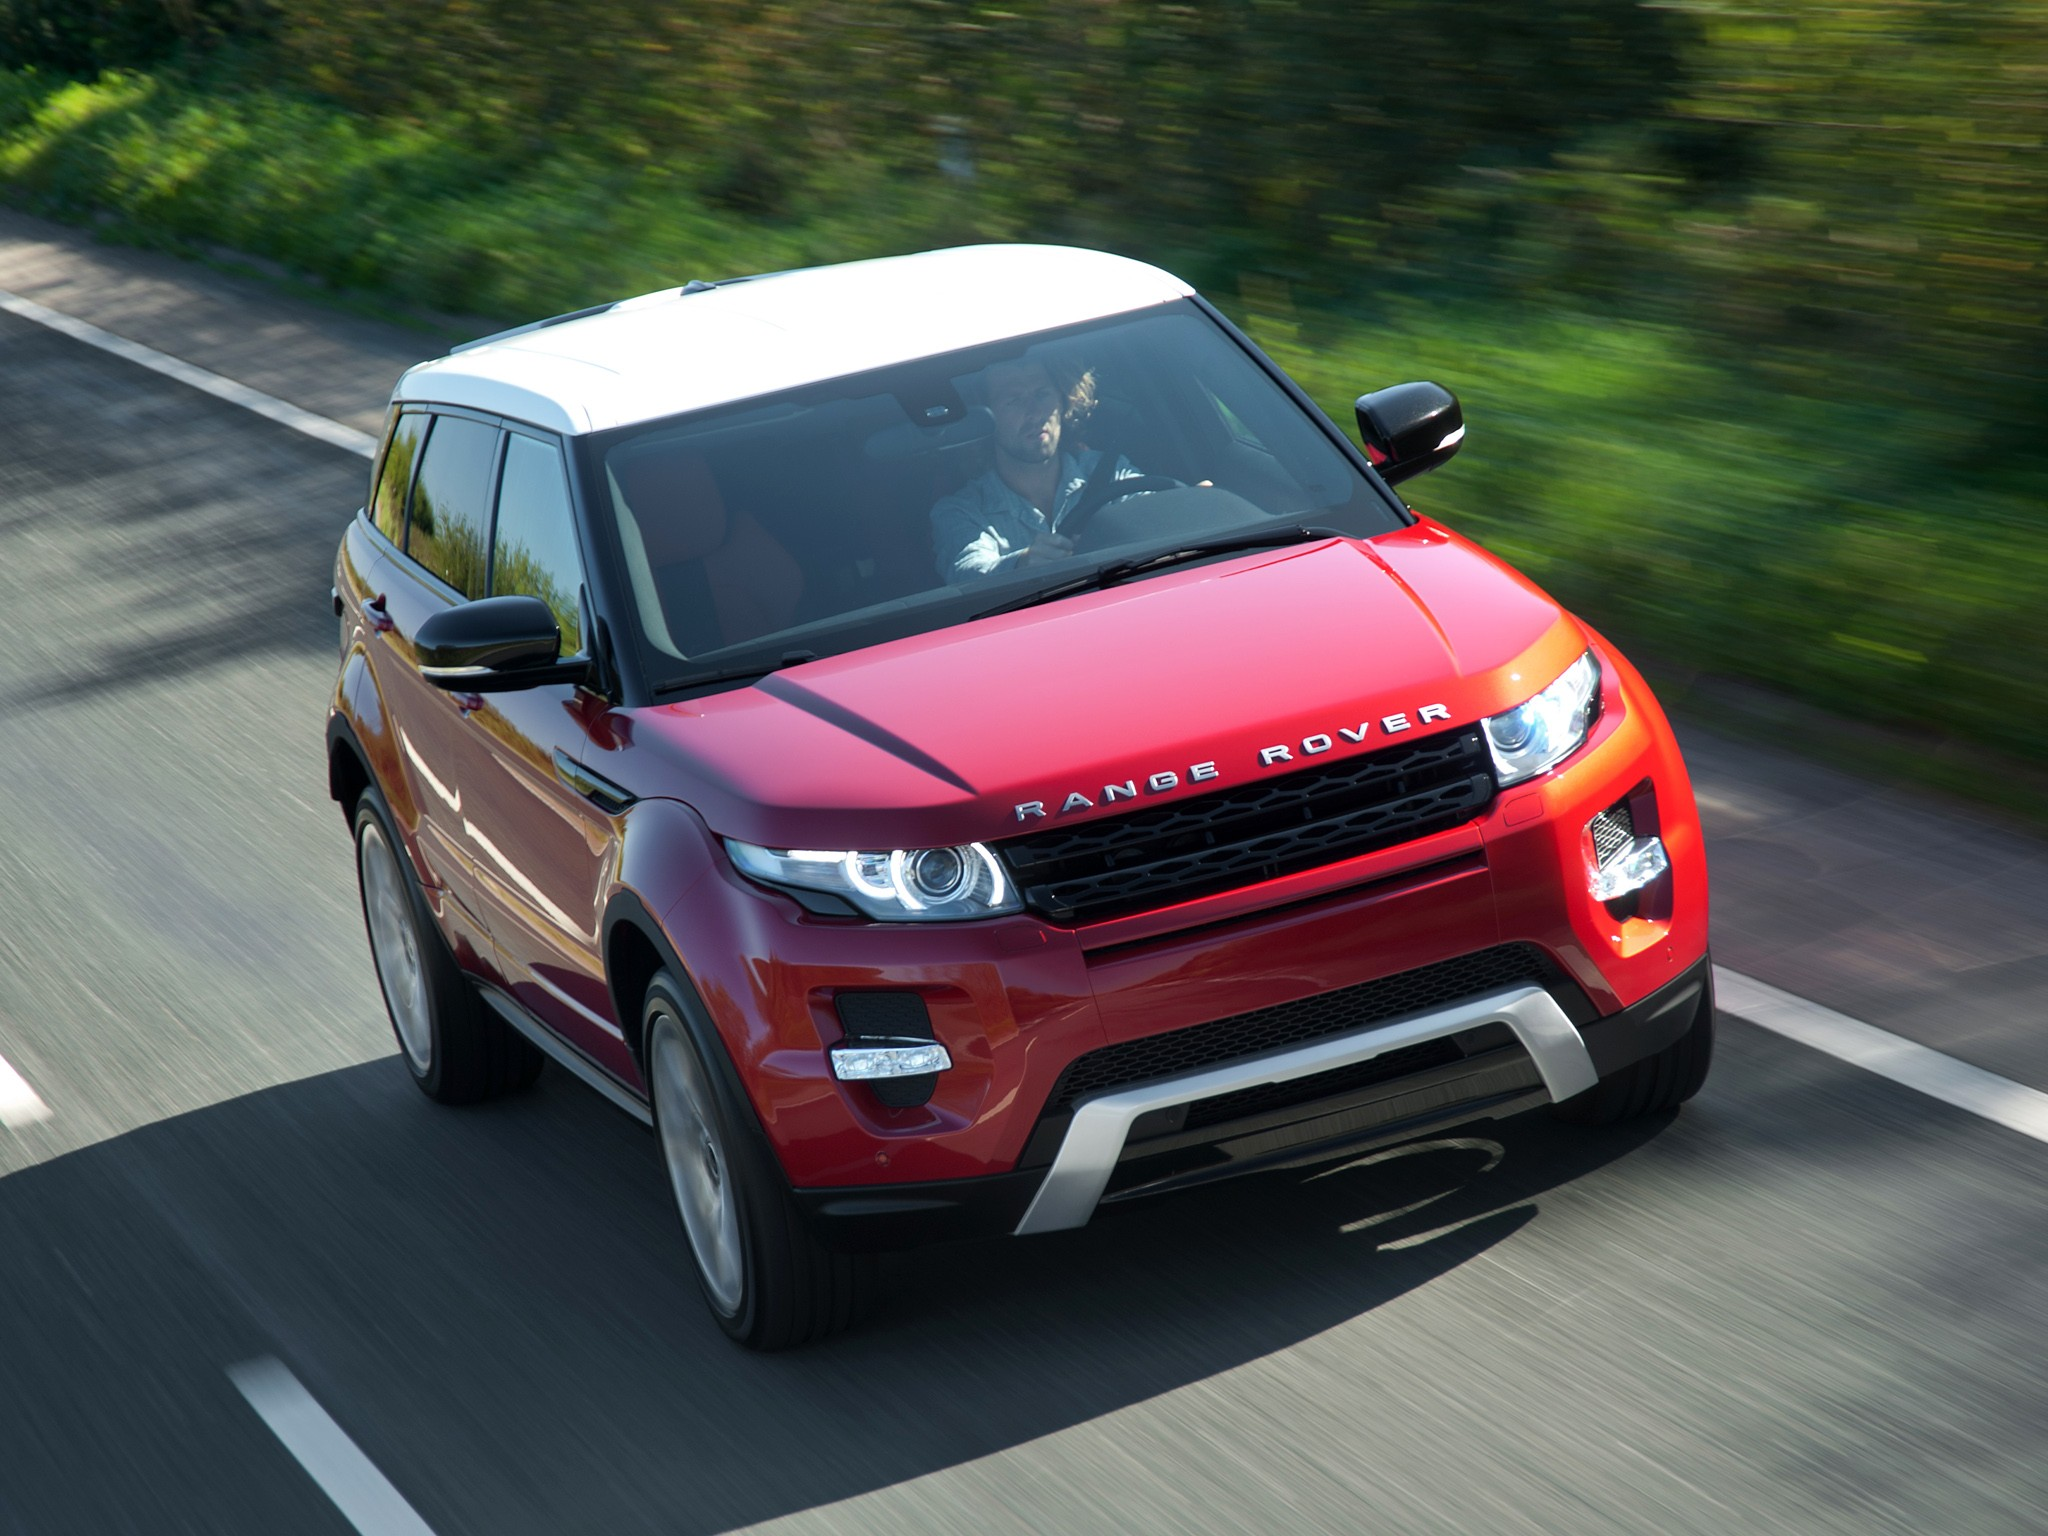 2019 Land Rover Range Rover Evoque 5 door photo - 5